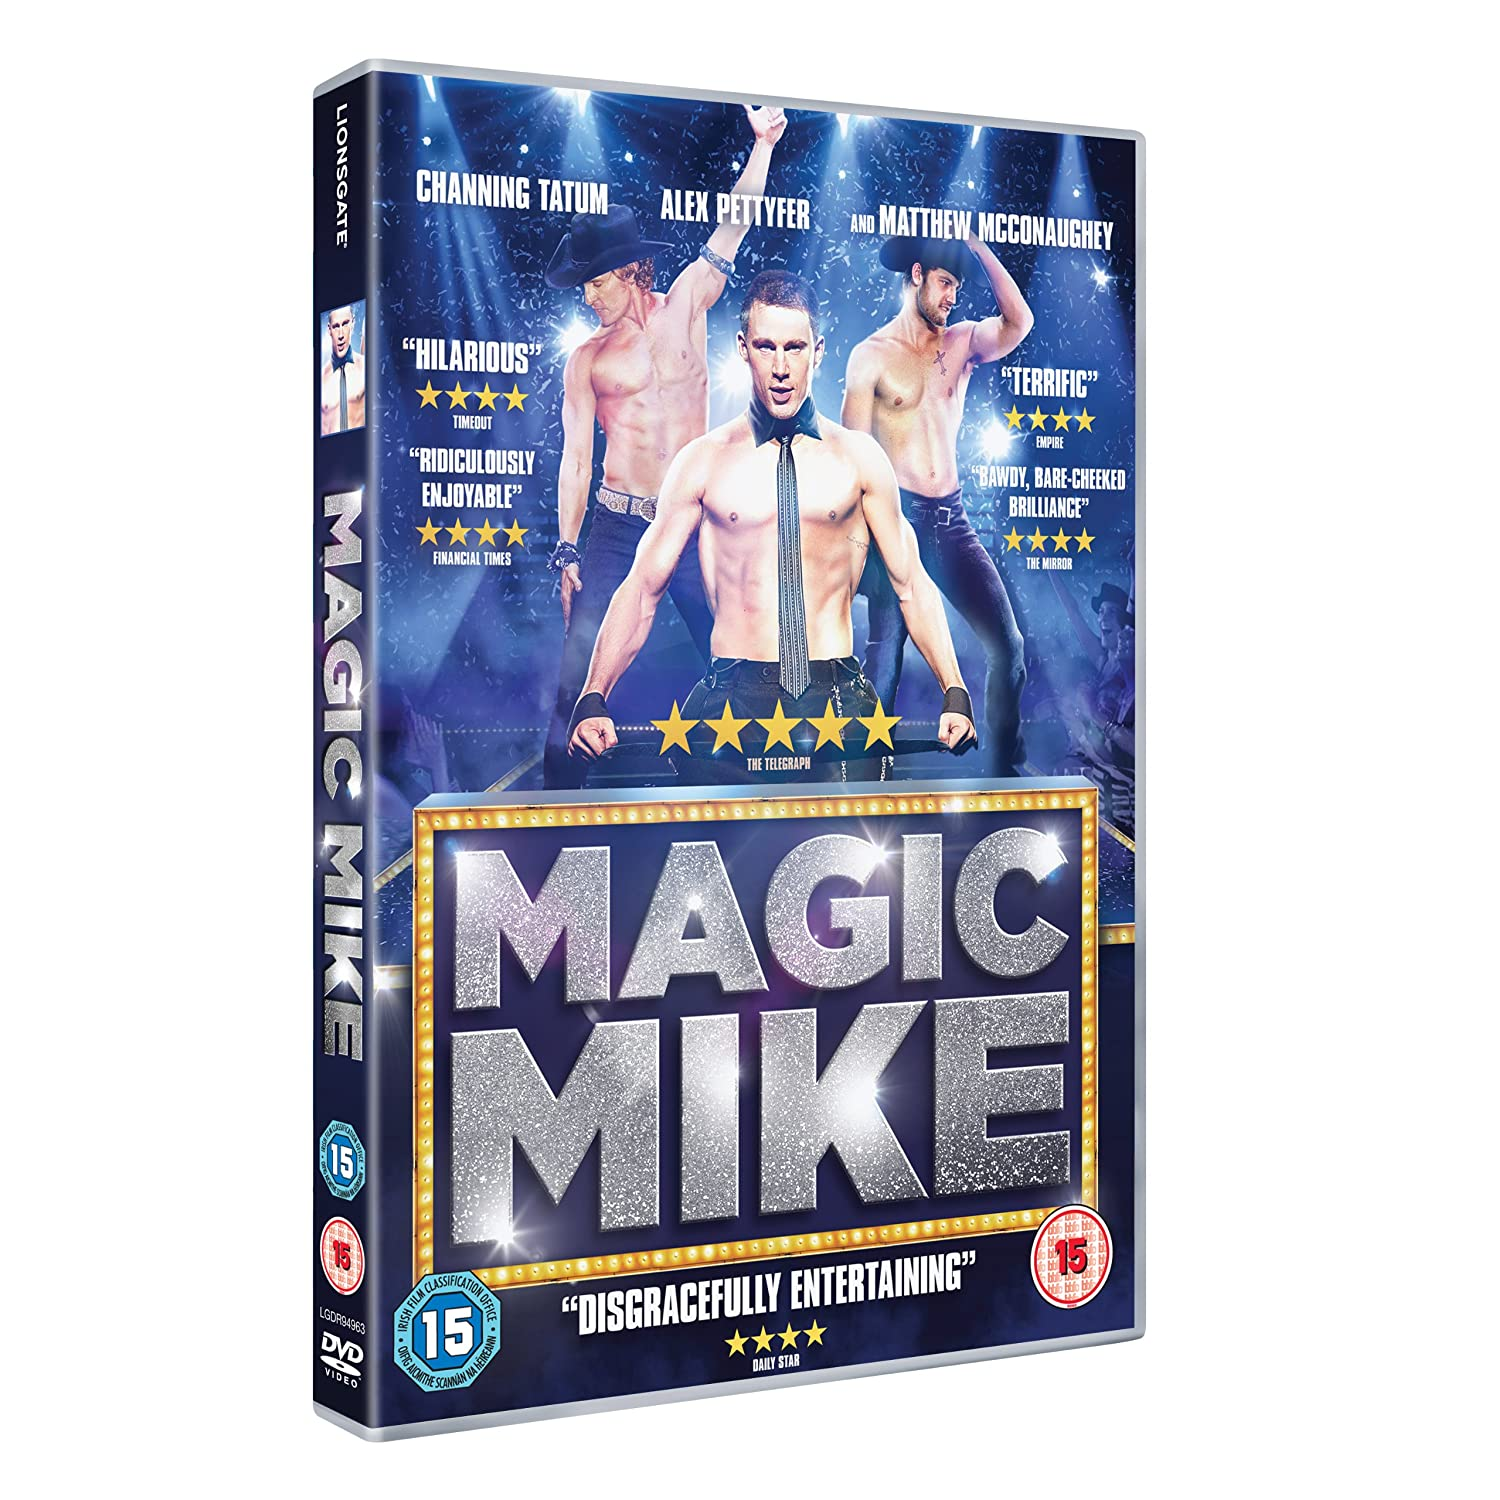 Win 2 Fabulous DVDS And Have The Perfect Movie Night In